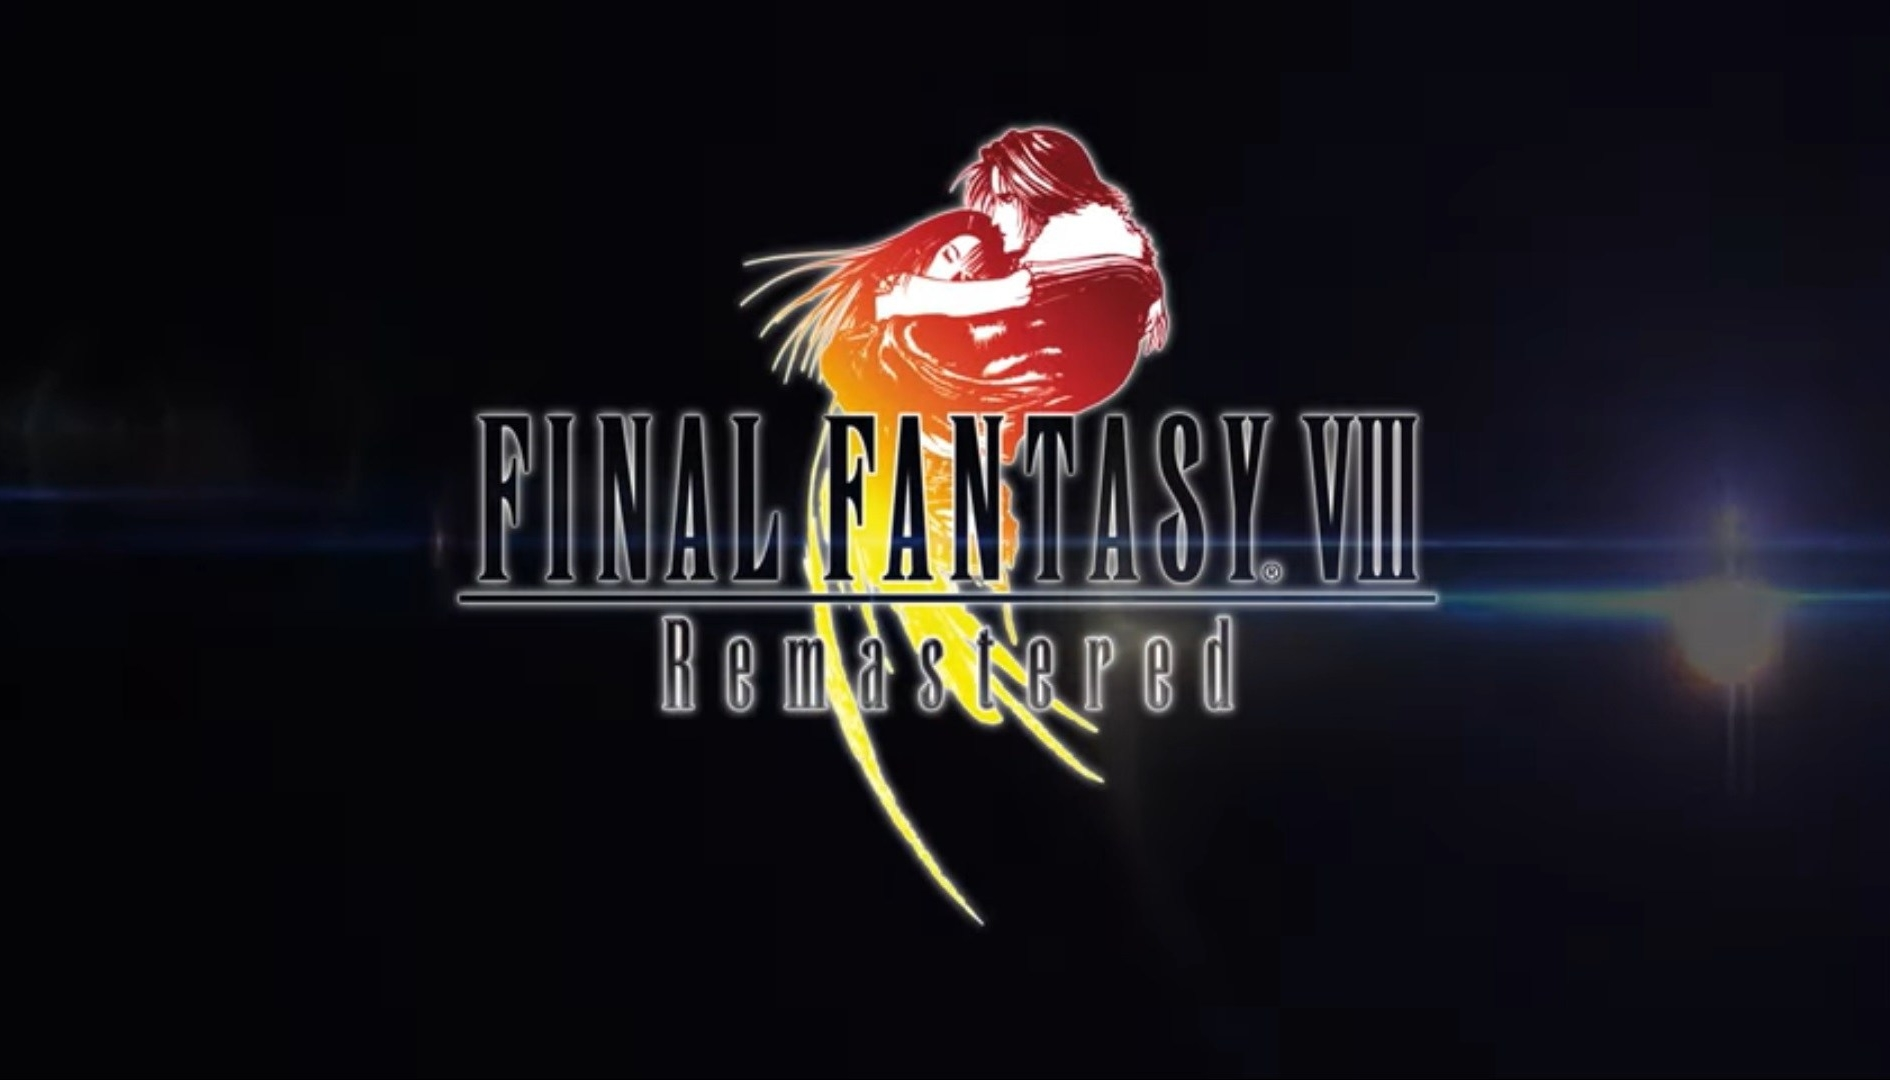 Final Fantasy 8 Remastered annunciato all'E3 2019, ecco il trailer